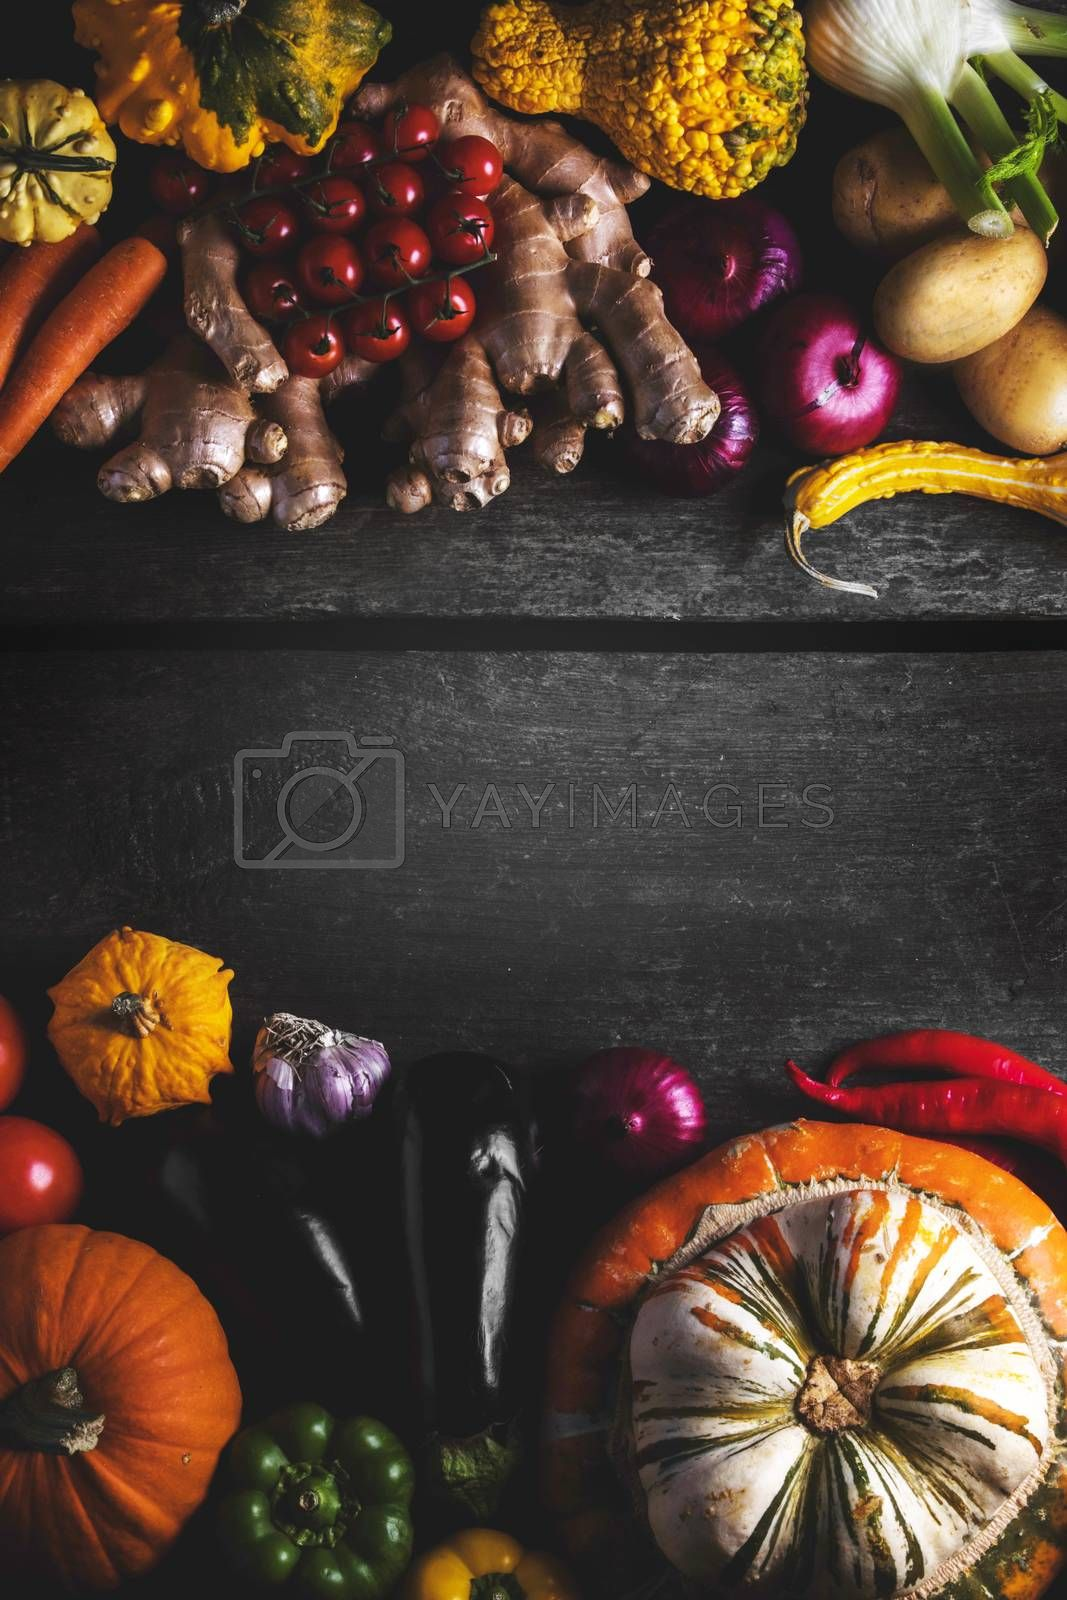 Harvest of many vegetables on rustic wooden table background border frame with copy space for text